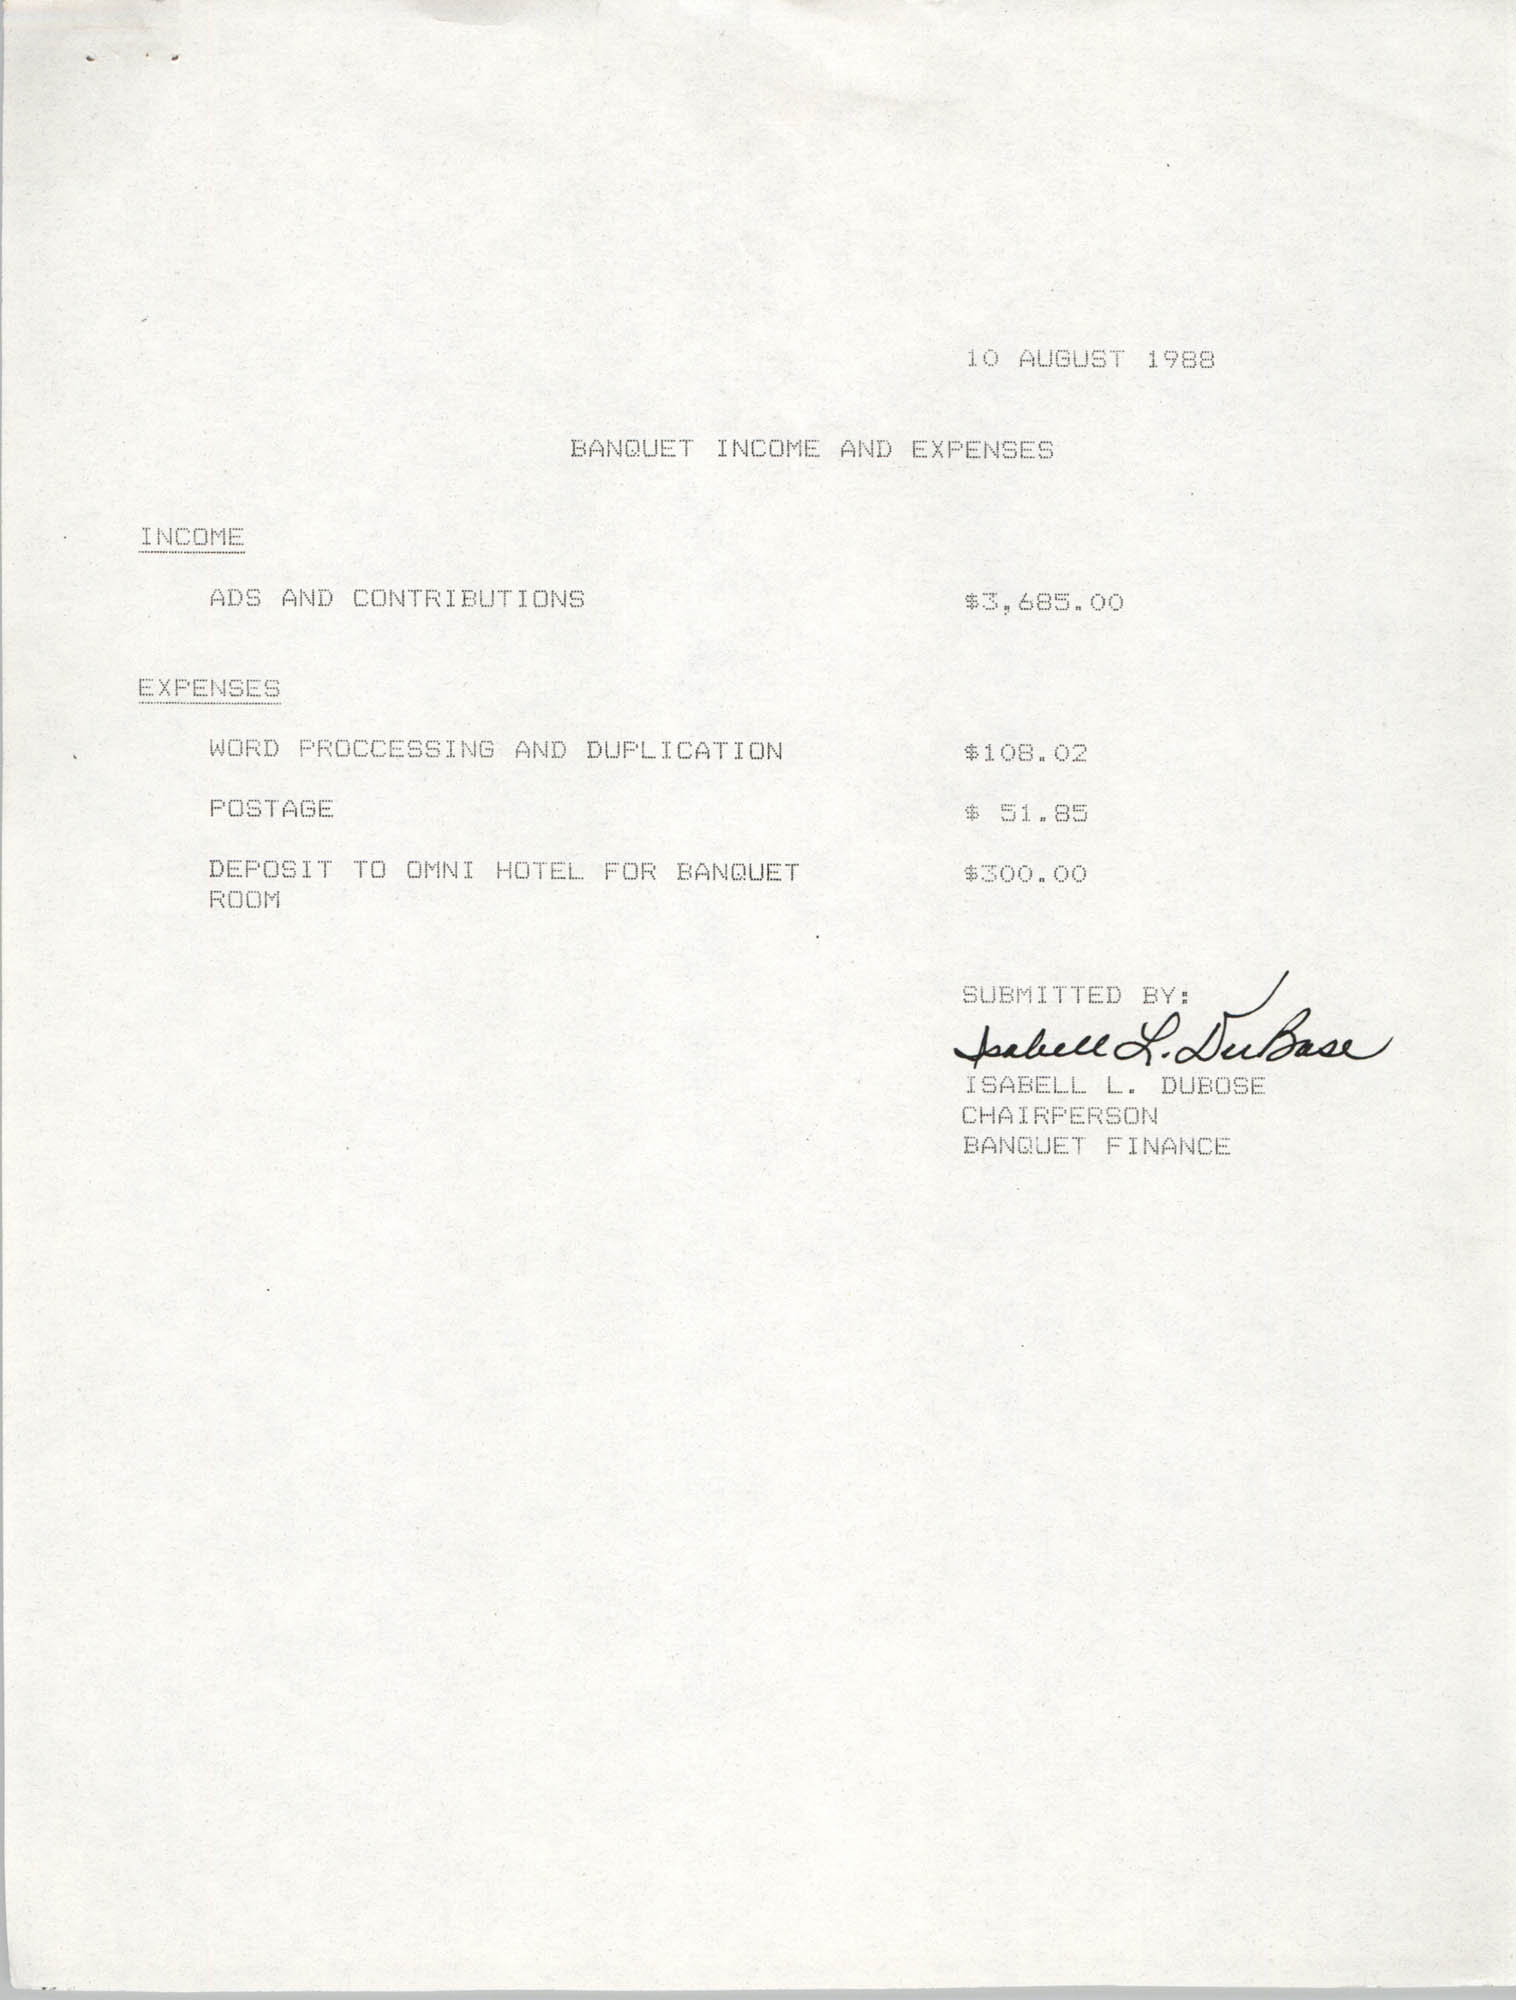 Banquet Income and Expenses,  Isabell L. DuBose, August 10, 1988